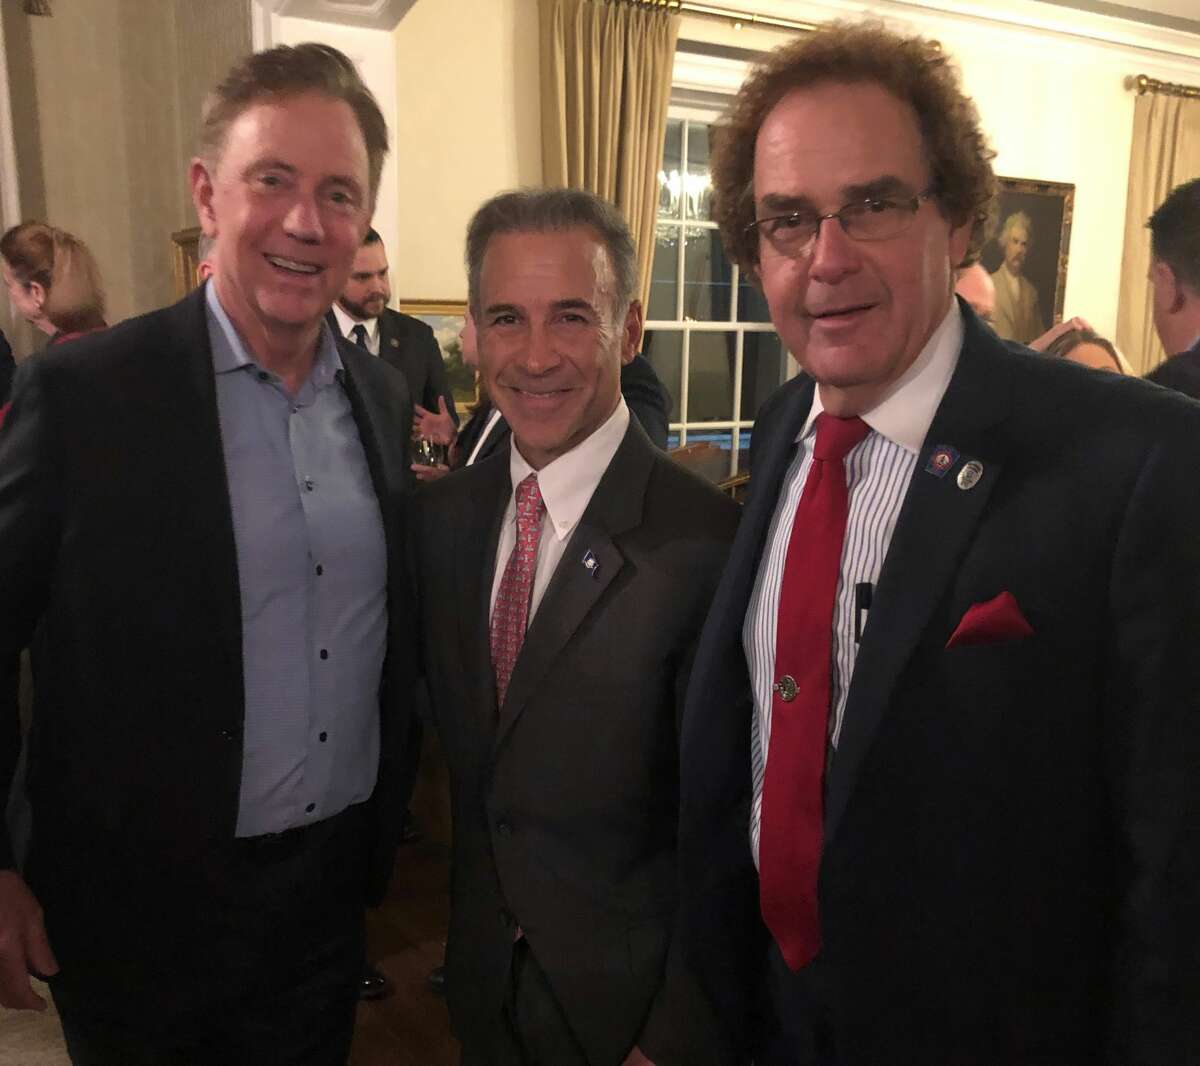 Gov. Ned Lamont, state Rep. Fred Camillo, R-Greenwich, and state Rep. Tom Delinicki, R-South Windsor, posed at the Valentine's Day